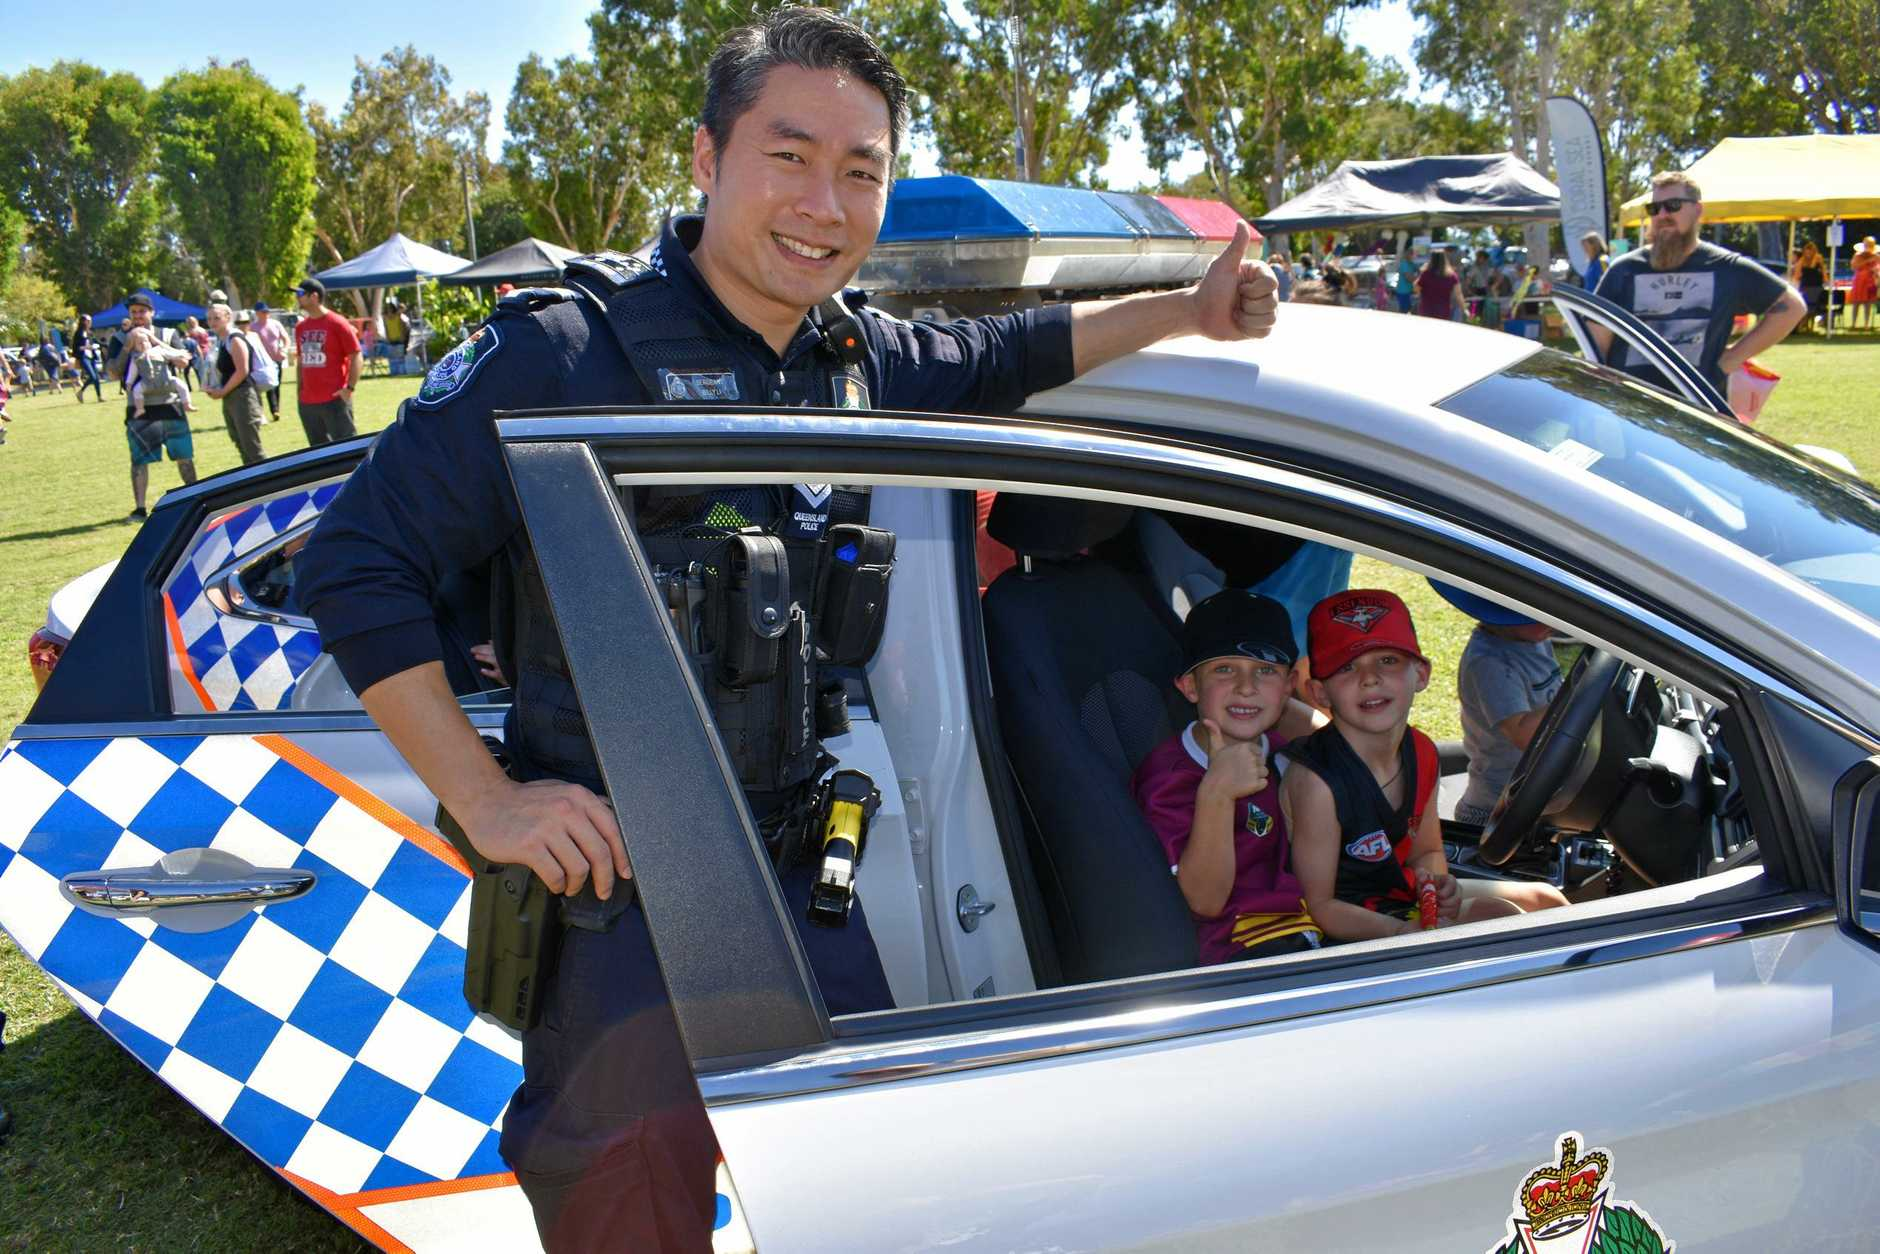 Youngsters Reef  and Jett Brookes got behind the driver's seat of a police car under the watchful eye of Sergeant Billy Li on Sunday.